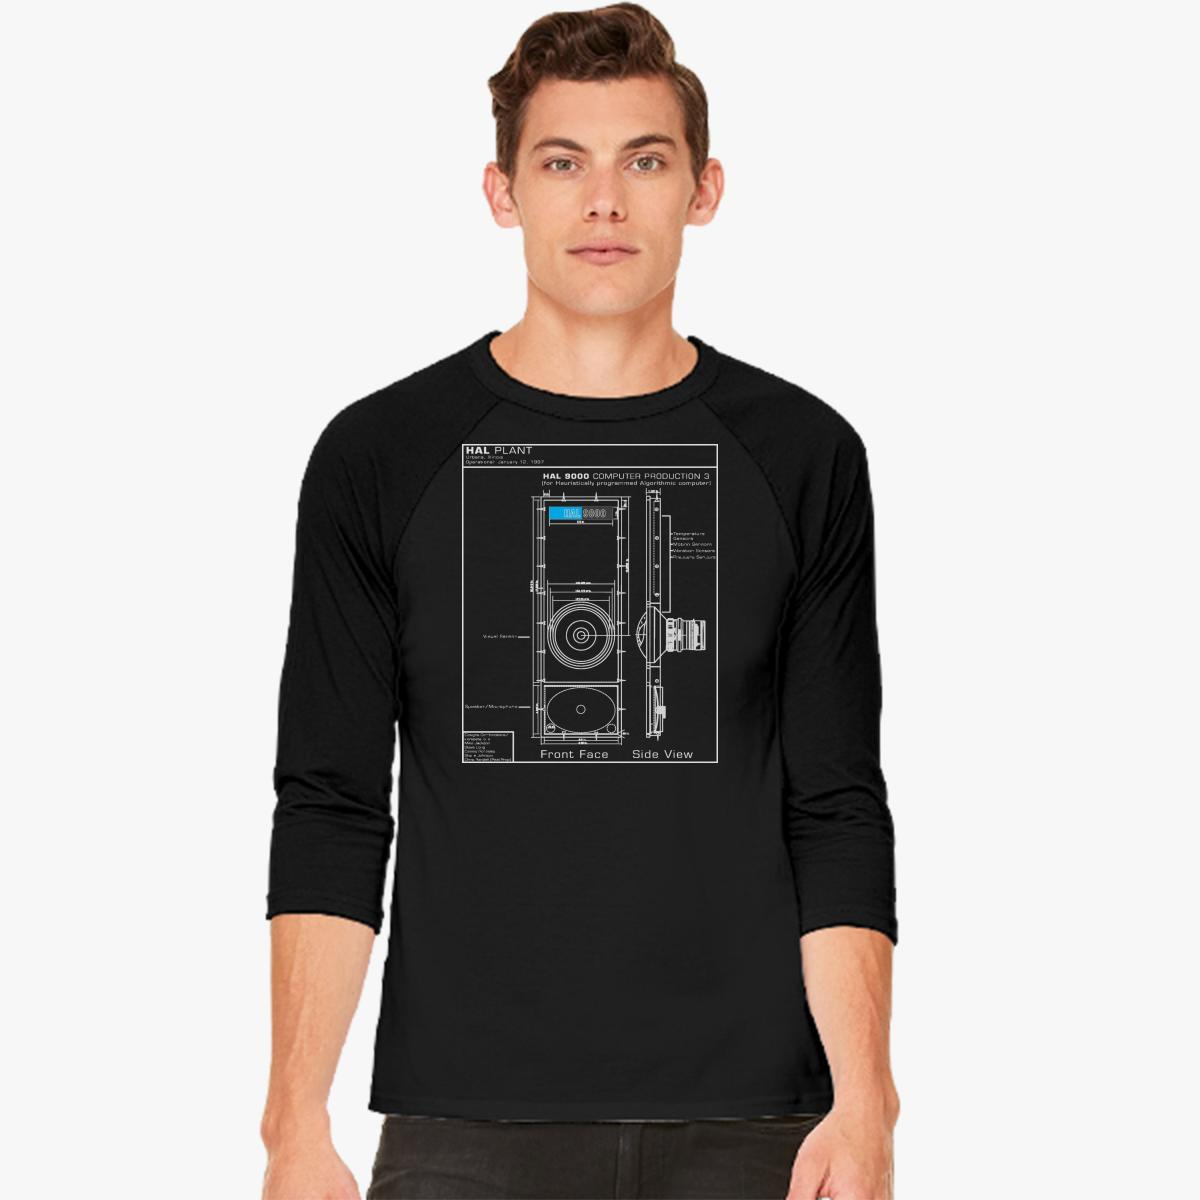 2001 a space odyssey hal 9000 blueprint baseball t shirt 2001 a space odyssey hal 9000 blueprint baseball t shirt malvernweather Image collections